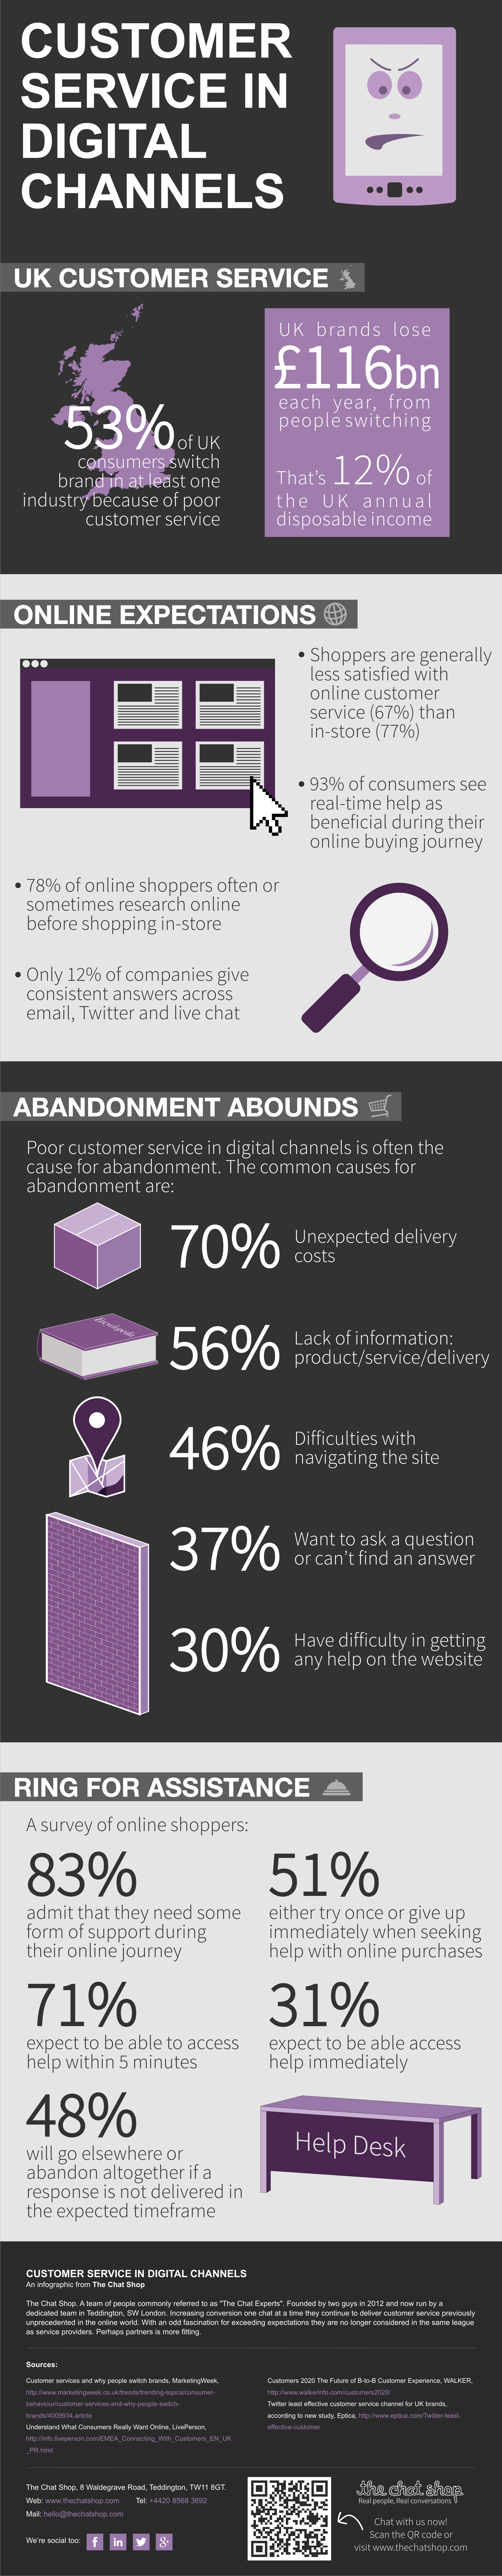 Customer Service In Digital Channels infographic